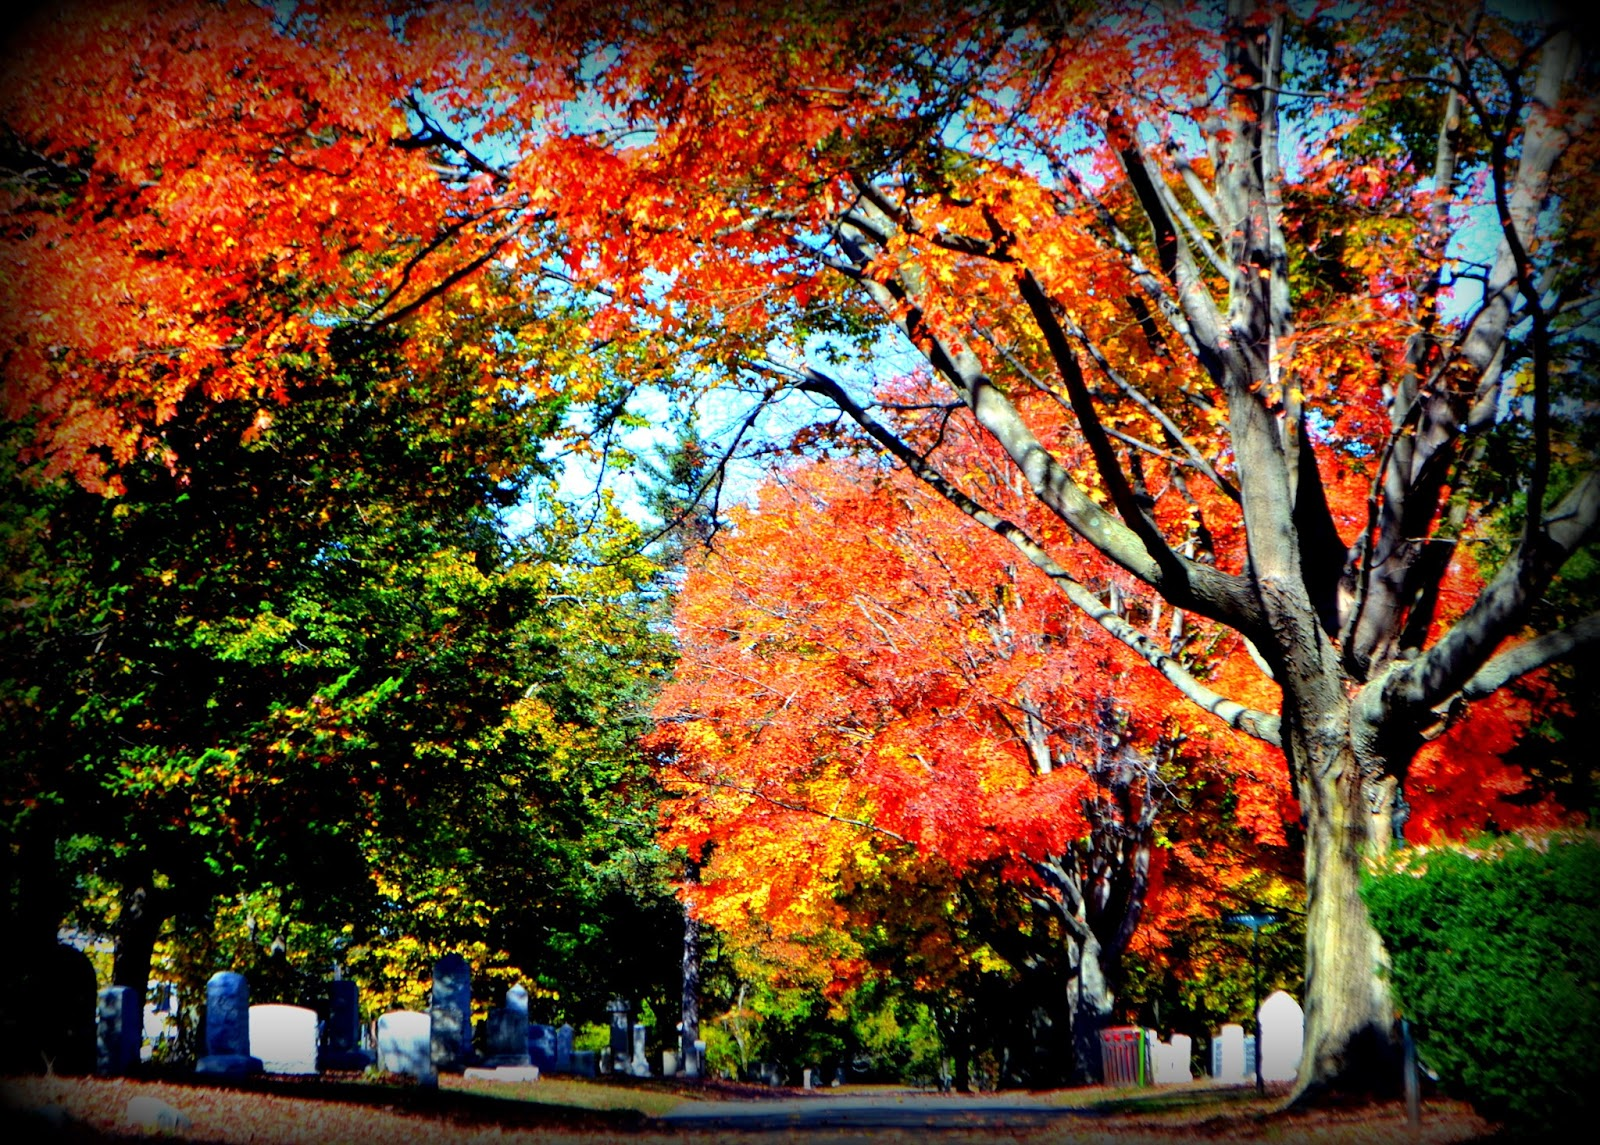 cemetery, fall foliage, autumn, leaves, color